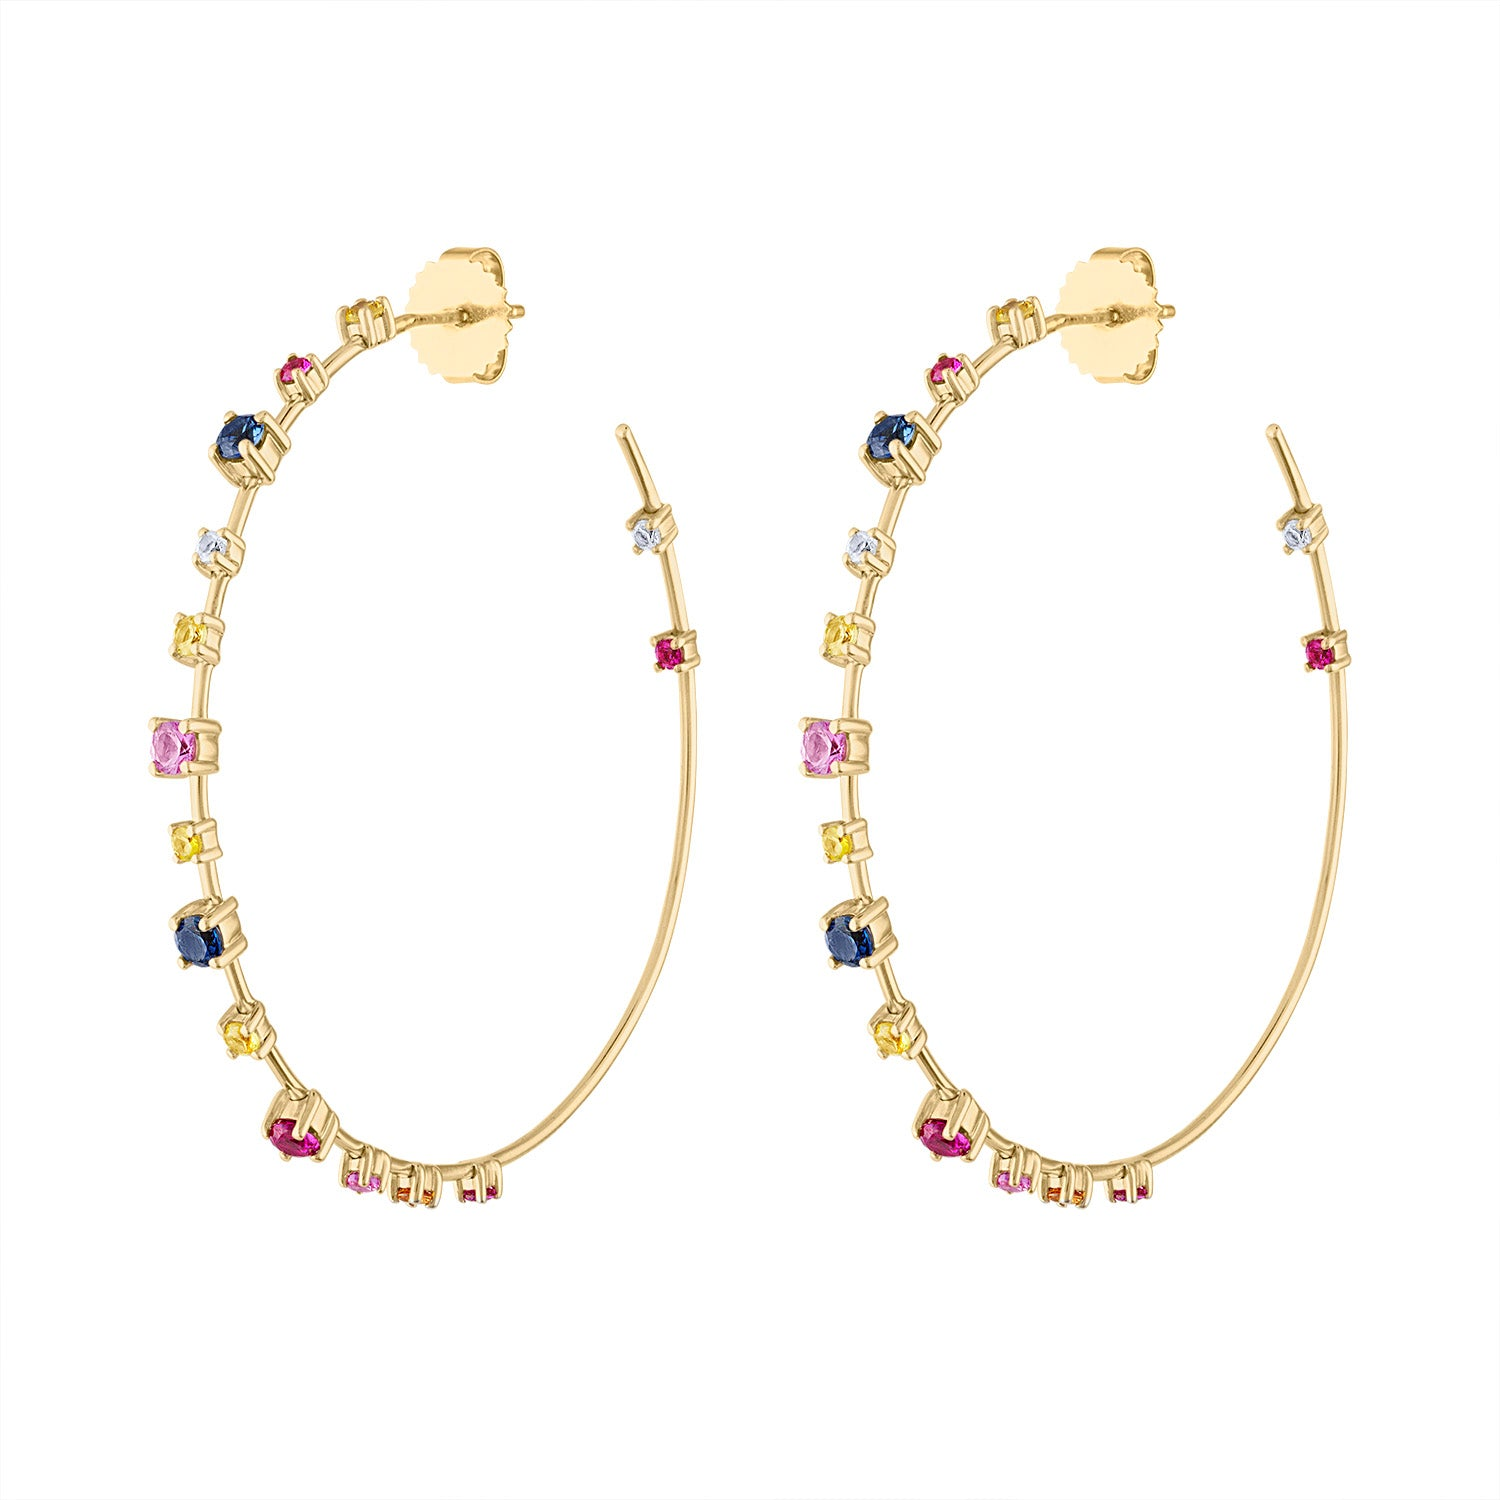 14KT GOLD MULTI-COLOR HOOP EARRING